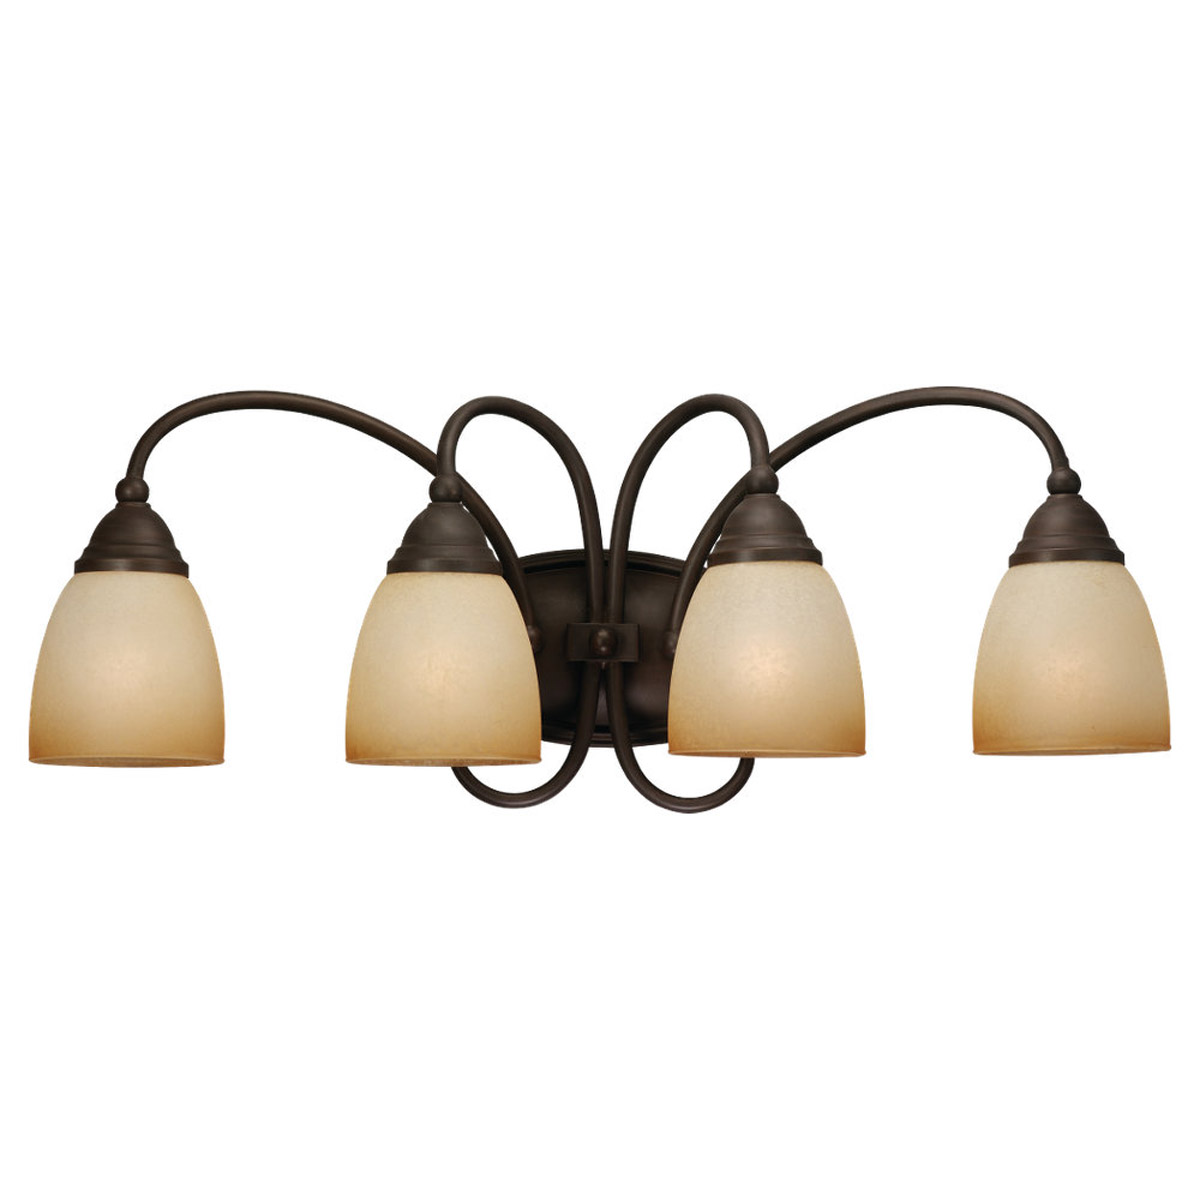 Sea Gull Lighting Montclaire 4 Light Bath Vanity in Olde Iron 44107BLE-72